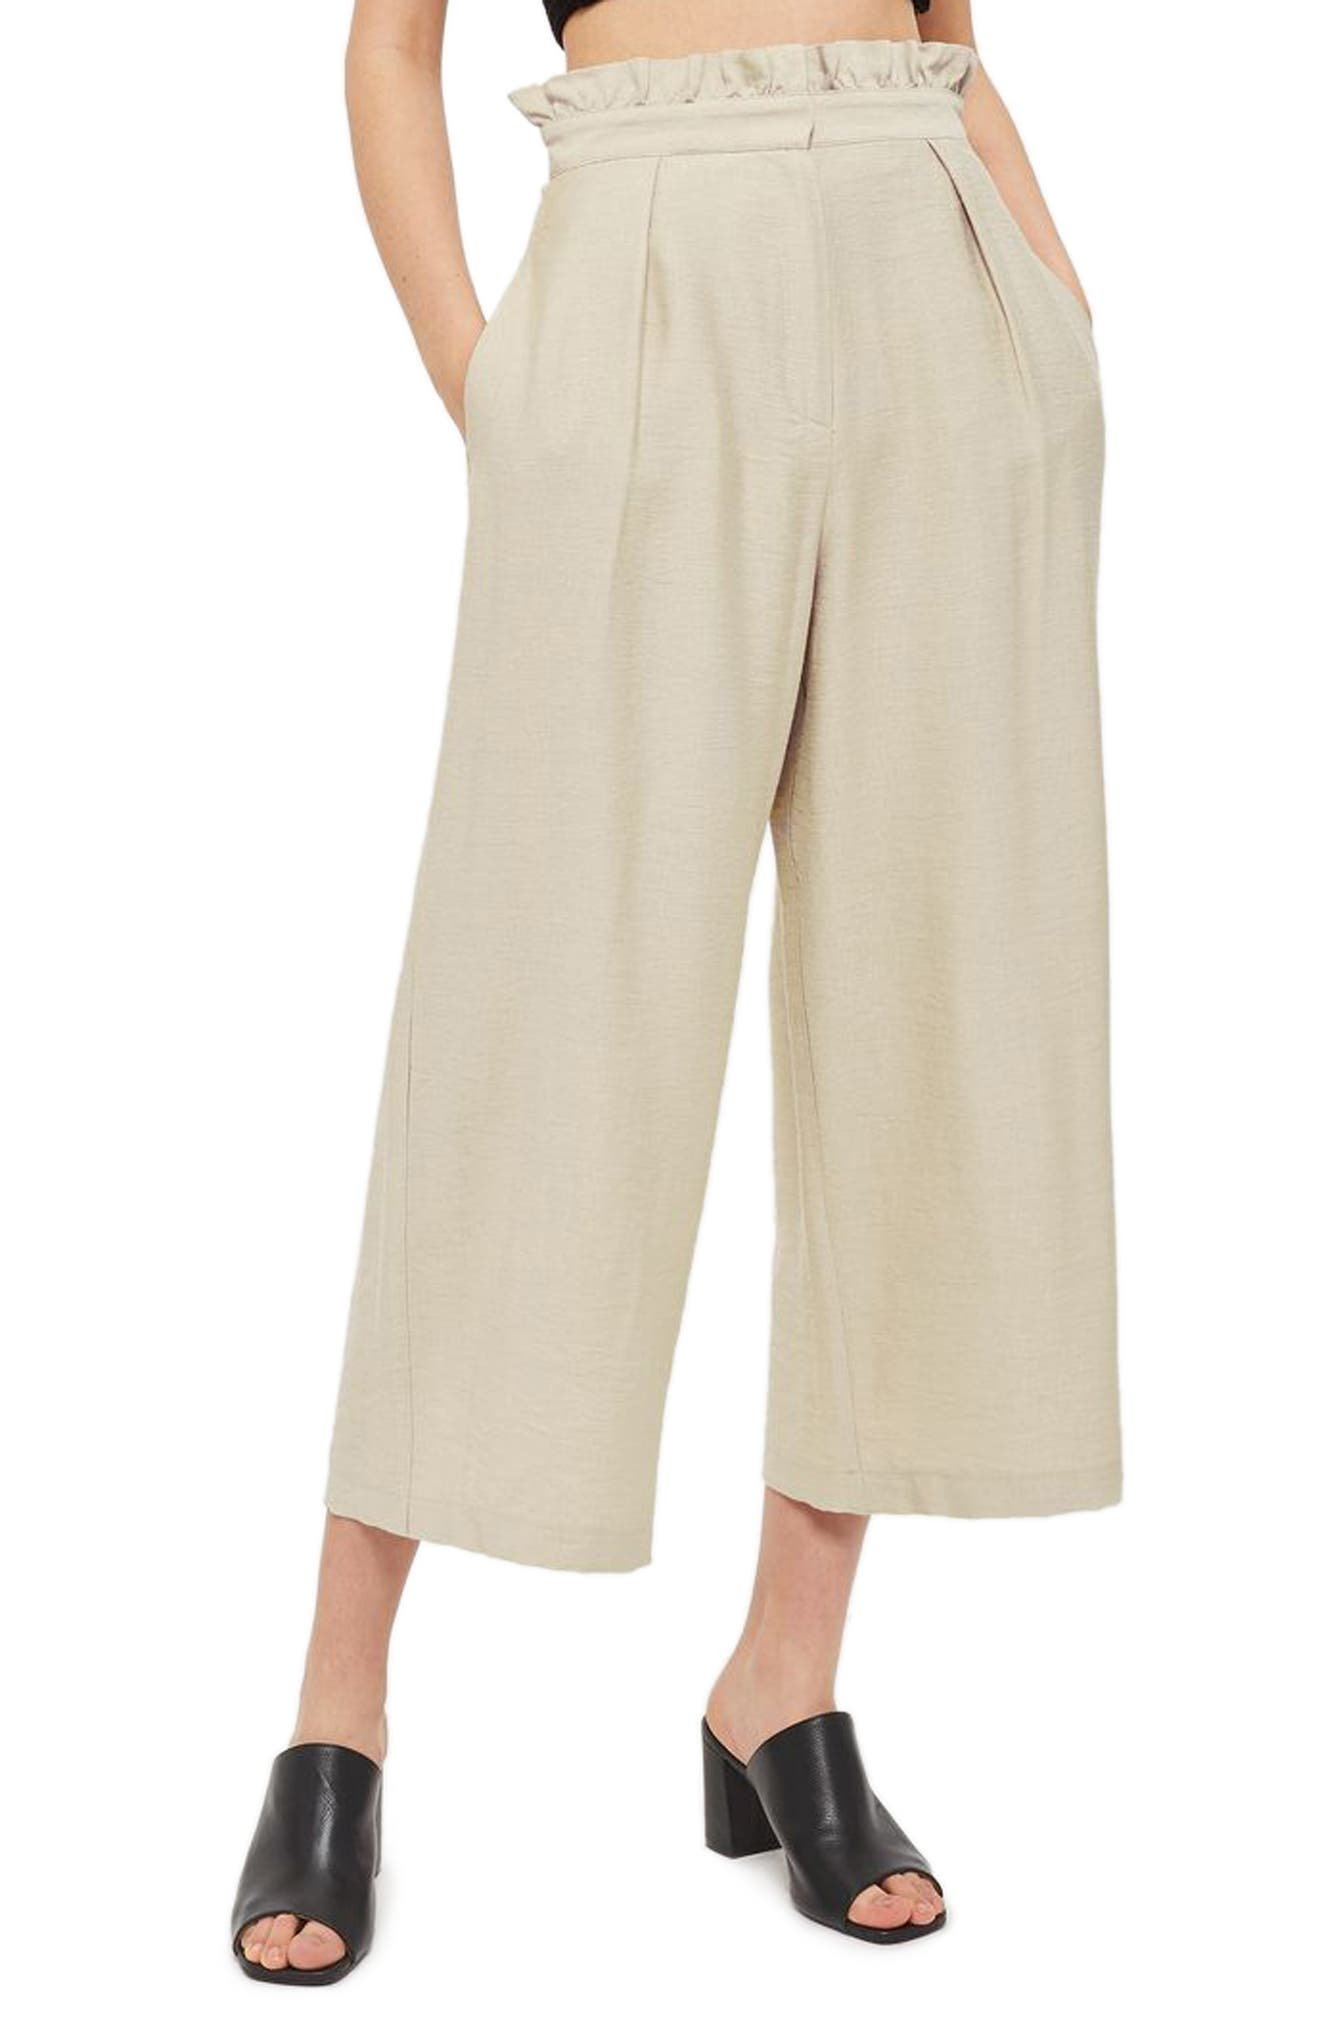 Alternate Image 1 Selected - Topshop Ruffle Waist Trousers